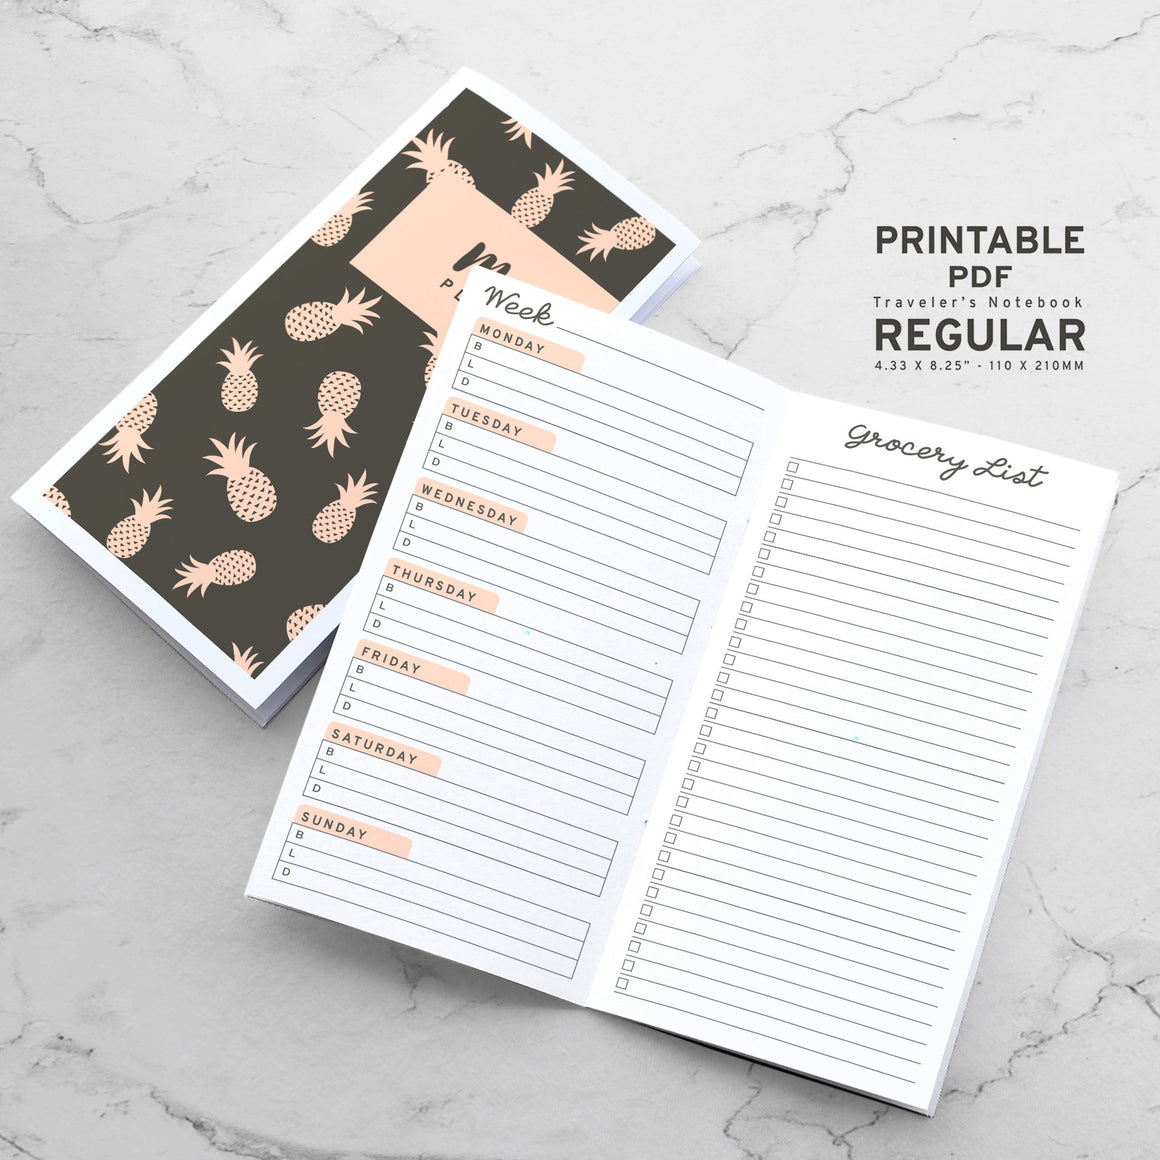 Printable Traveler's Notebook Meal Planner Insert - Regular TN